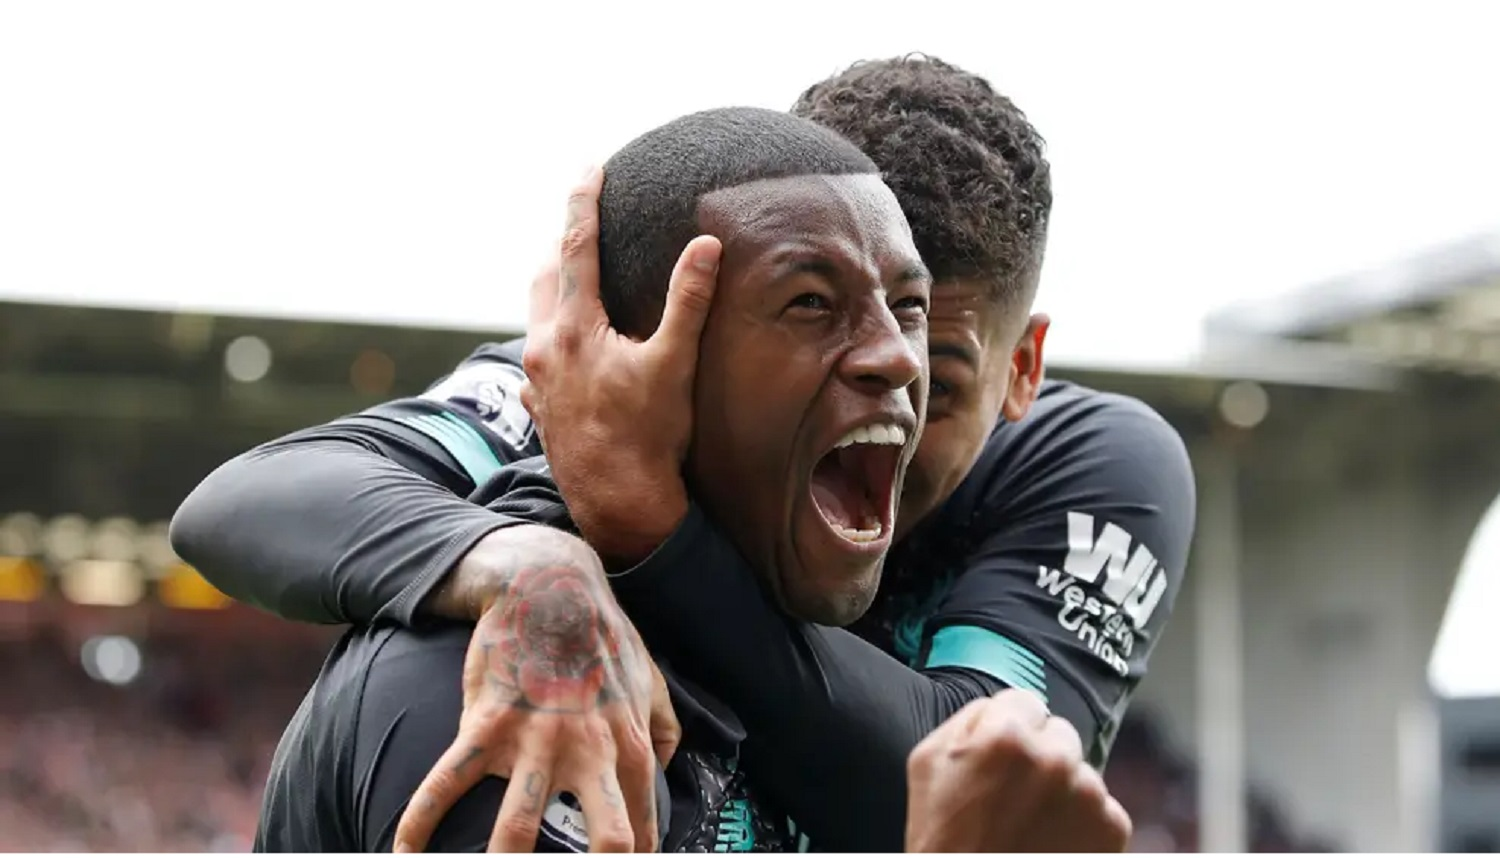 There was nothing concrete in Barcelona links ― Wijnaldum